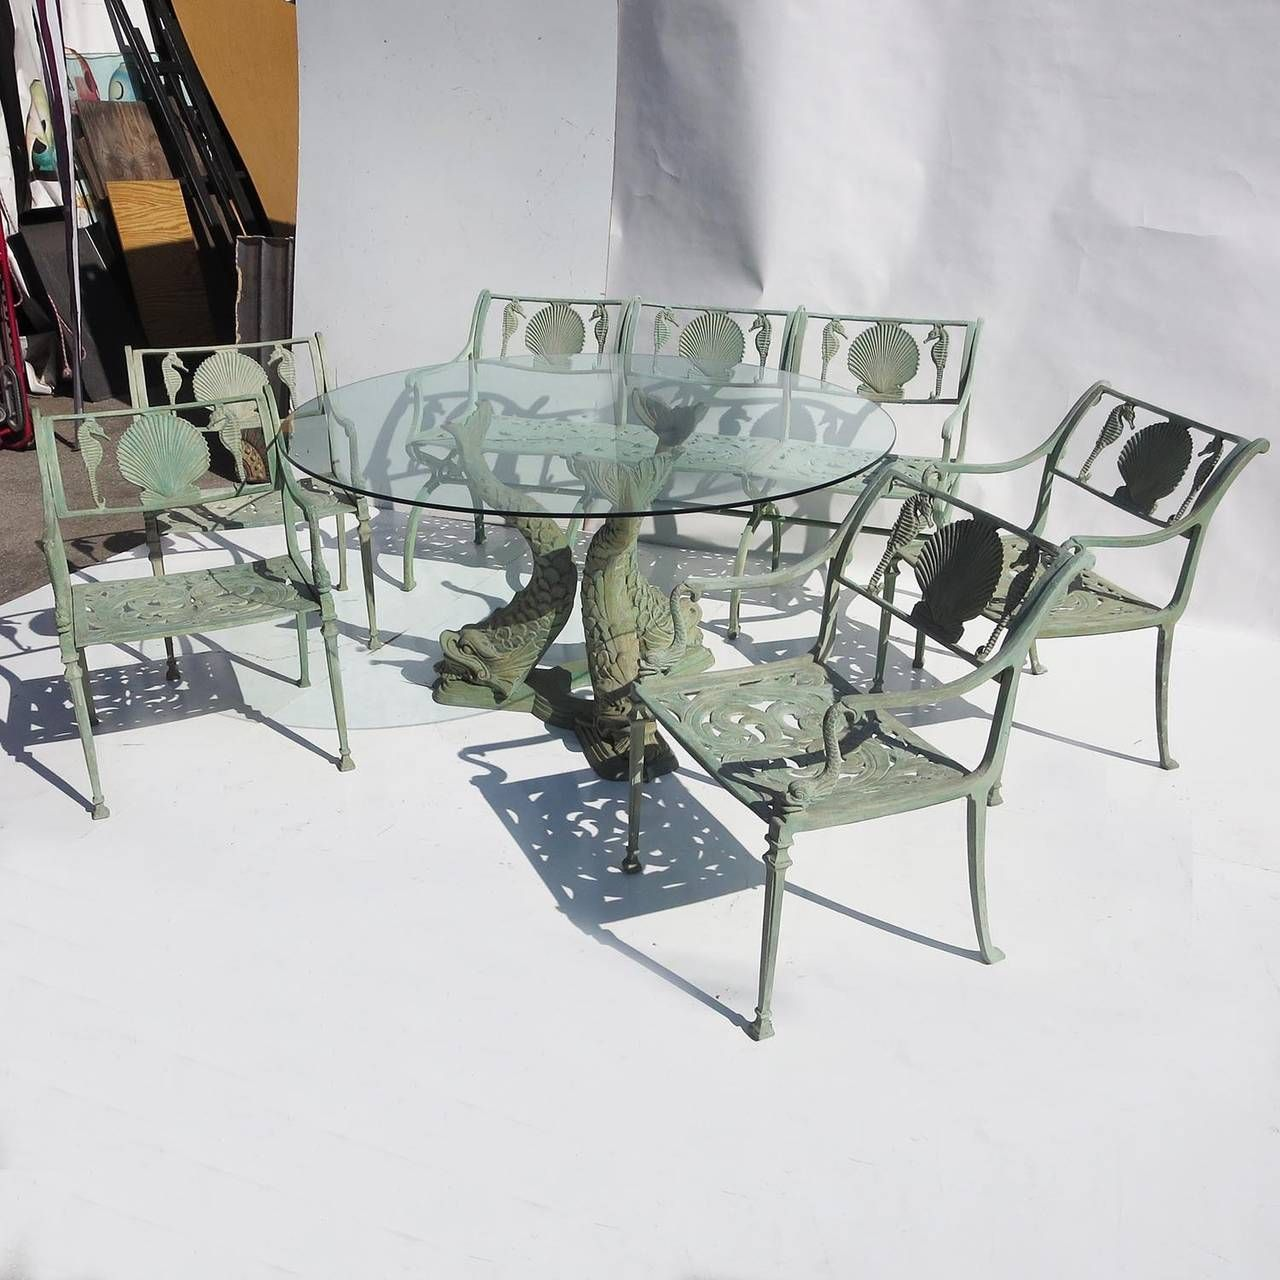 Seahorse and Shell Motif Patio Suite by Molla NYC | From a unique collection of antique and modern garden furniture at https://www.1stdibs.com/furniture/building-garden/garden-furniture/